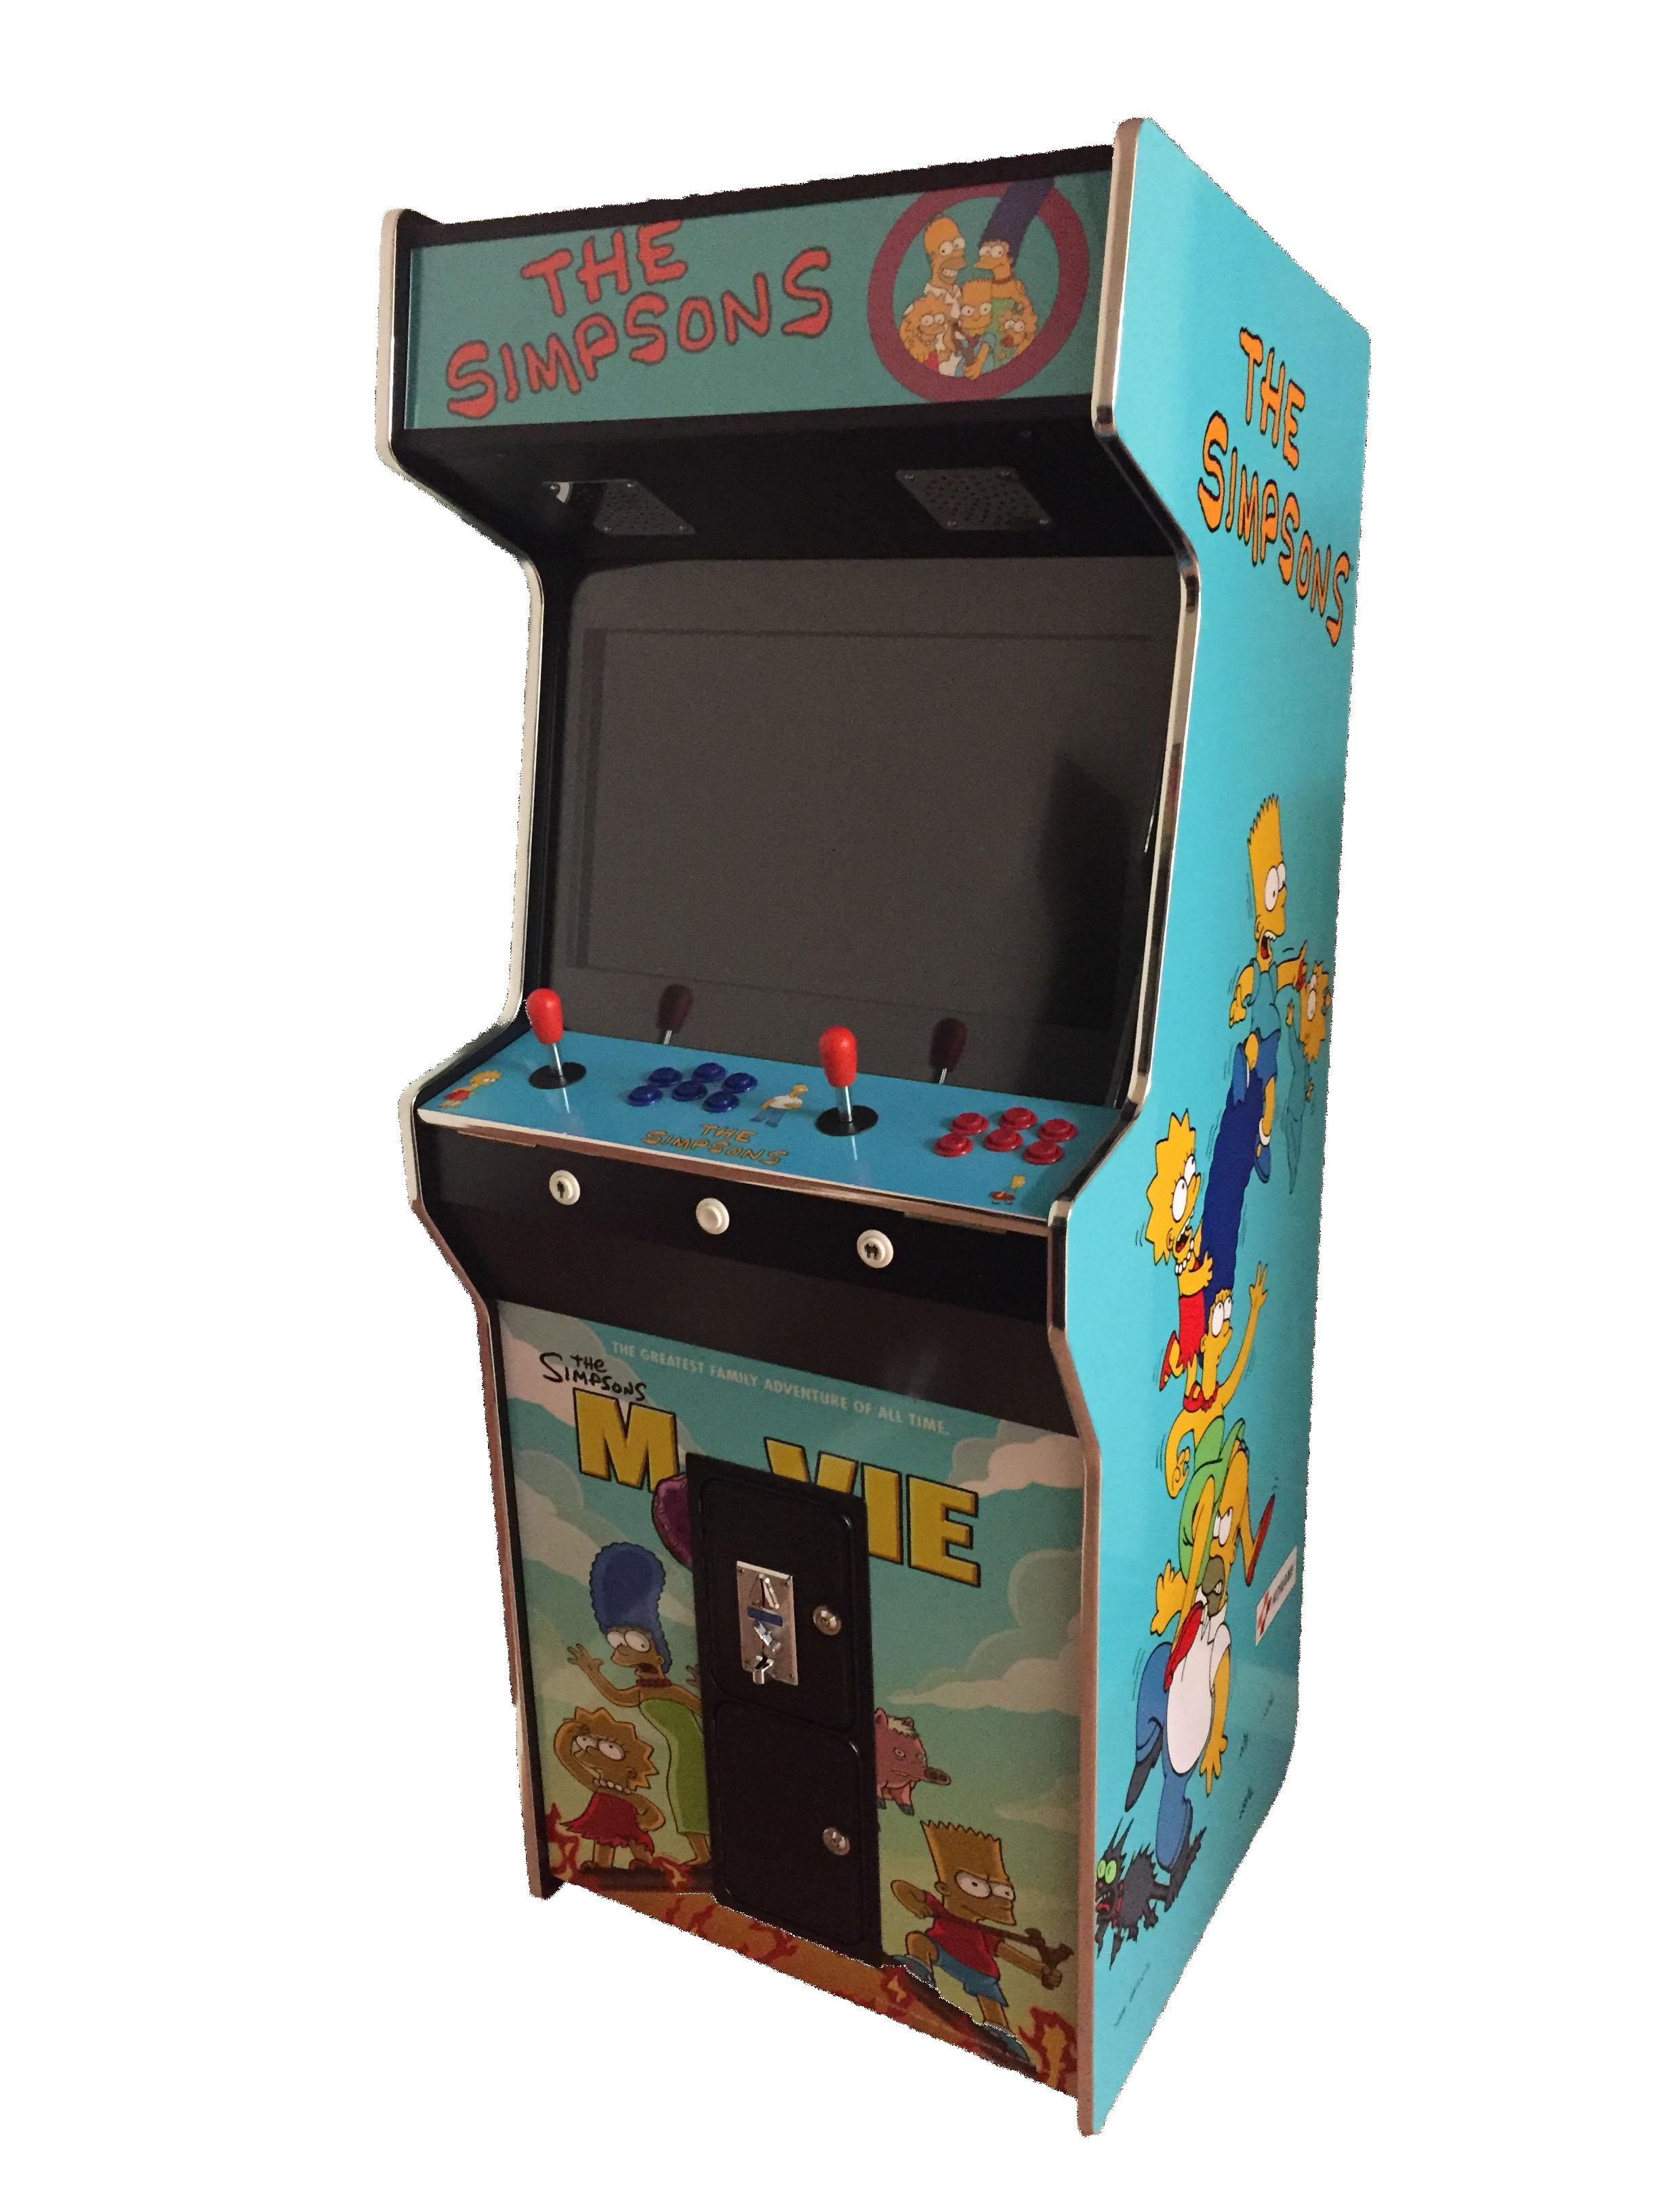 Arcade Rewind 3500 Game Upright Arcade Machine Simpsons sydney